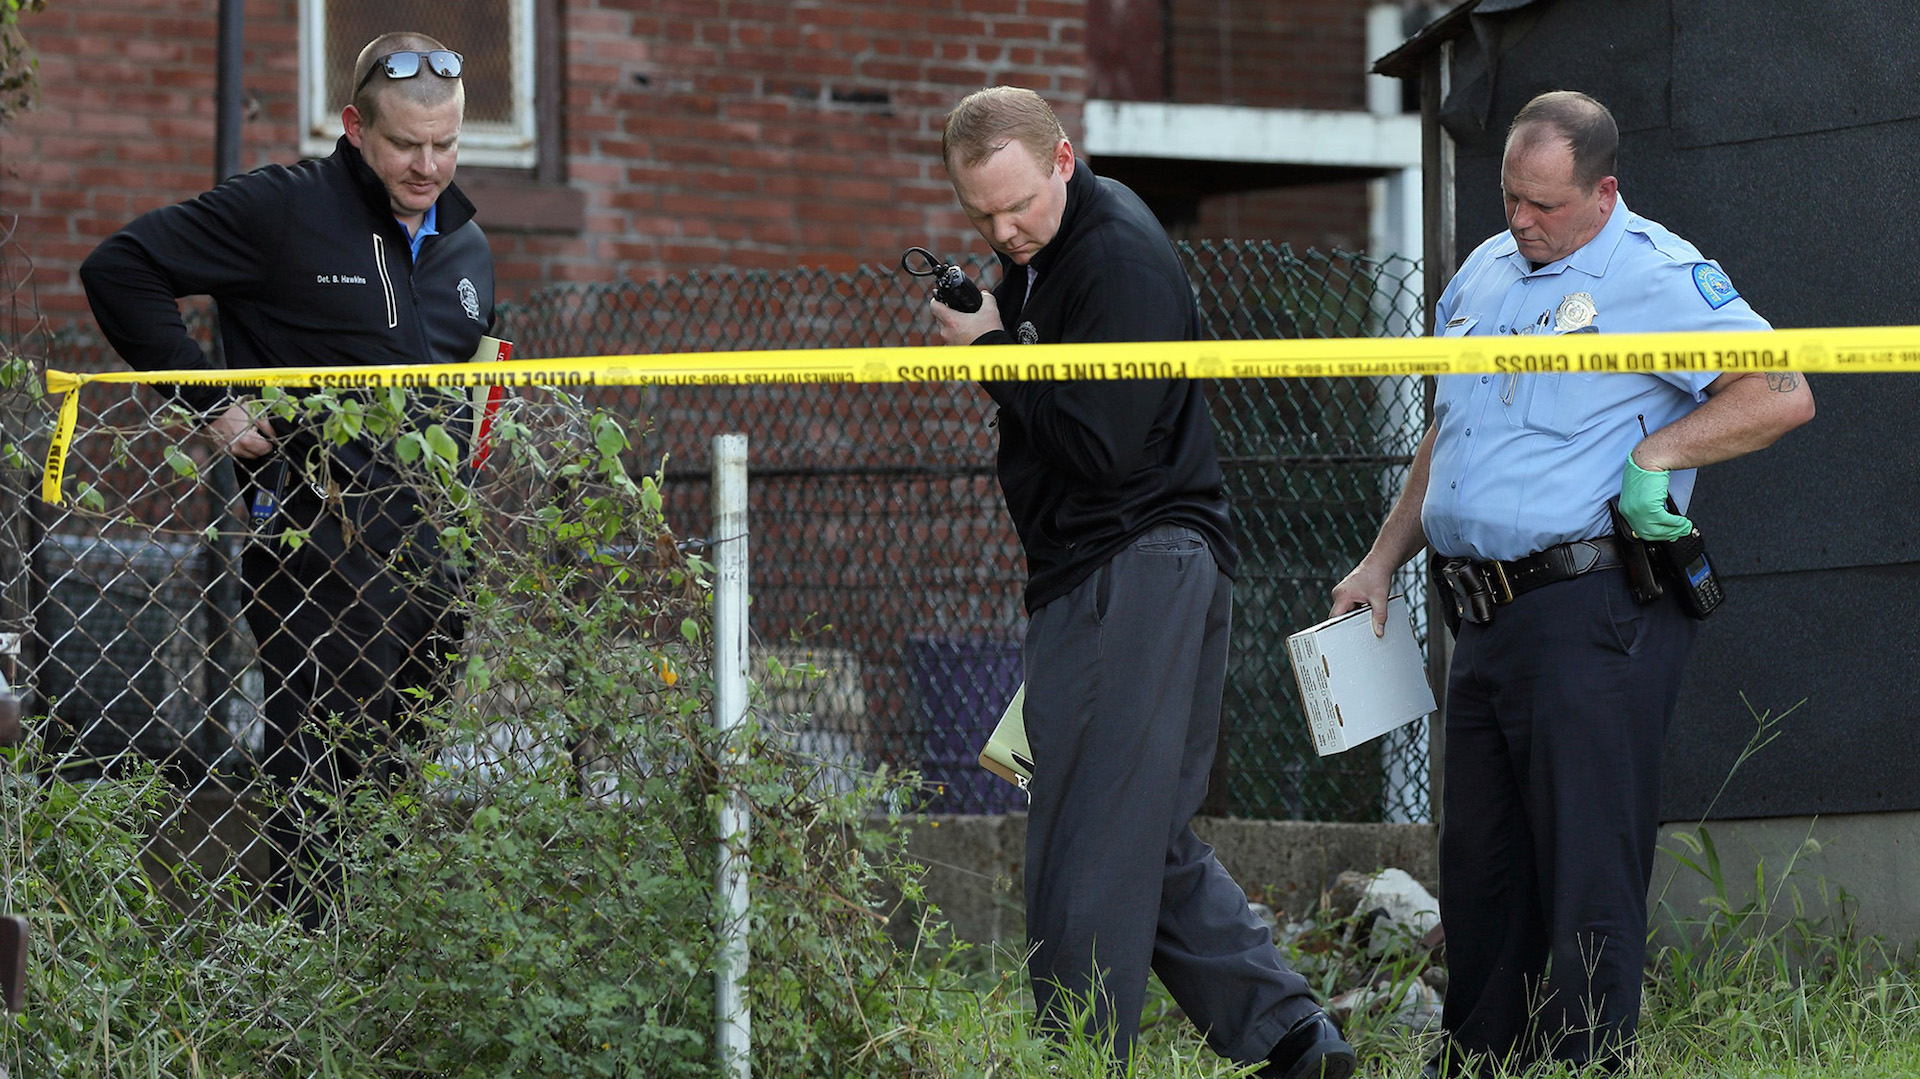 Man Arrested After Accidentally Shooting Son While Demonstrating Firearm Safety